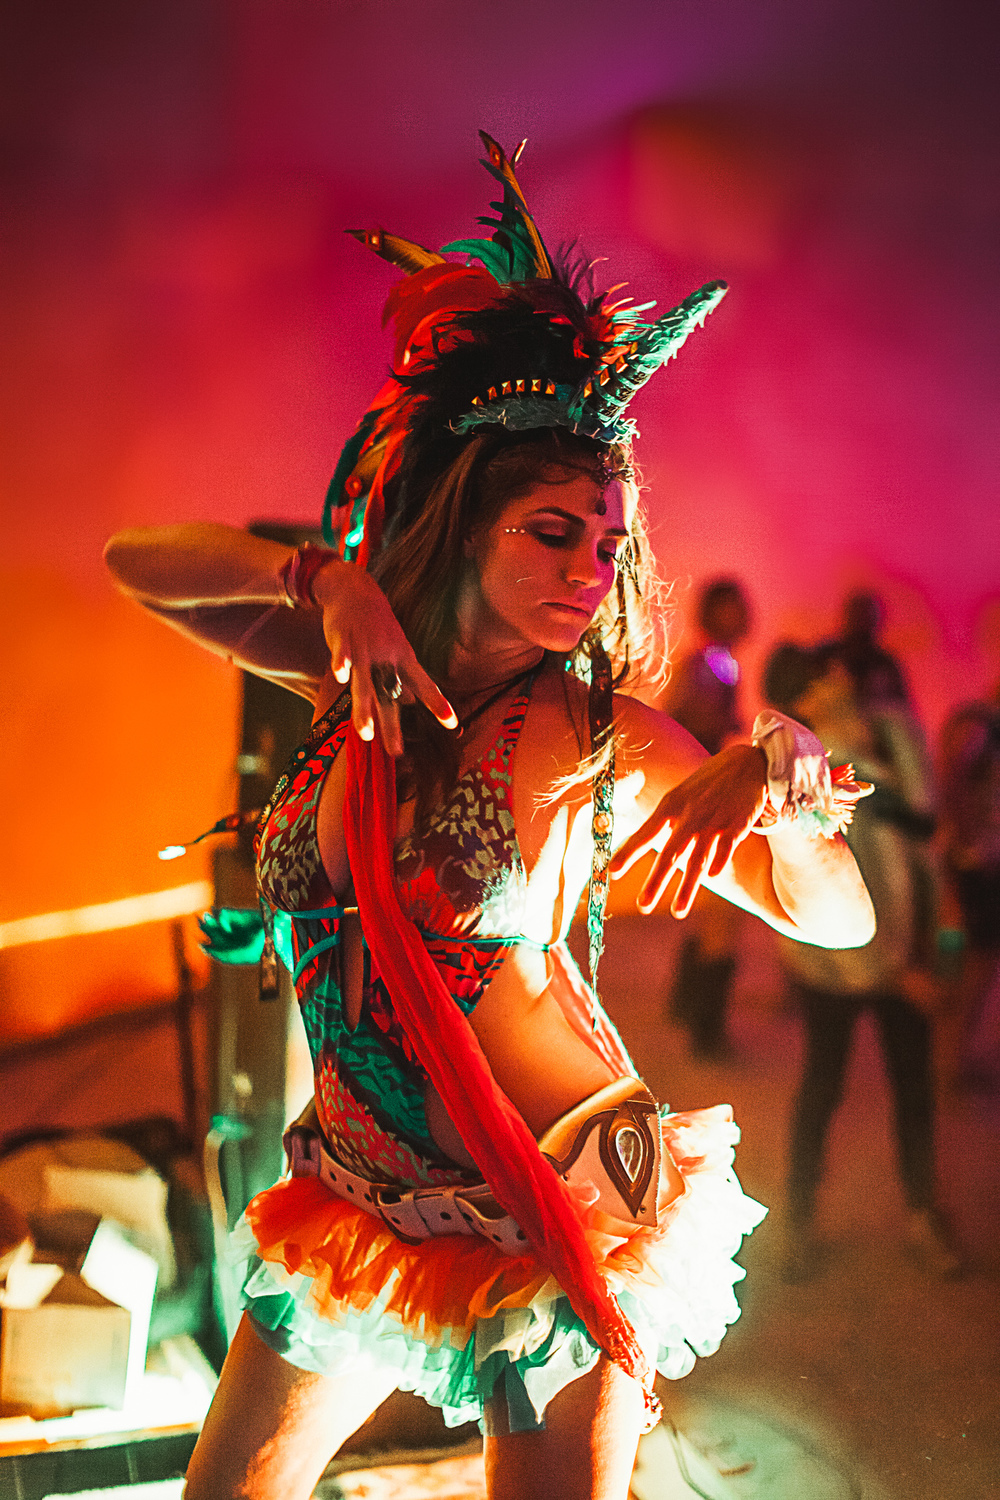 VOENA_BLACK_ROCK_CITY_BRC_BURNING_MAN_2013_PHOTOGRAPHY_EDITORIAL_SAM_WHITESIDE_CAI_GRIFFIN_DESERT_BURNERS-154.jpg